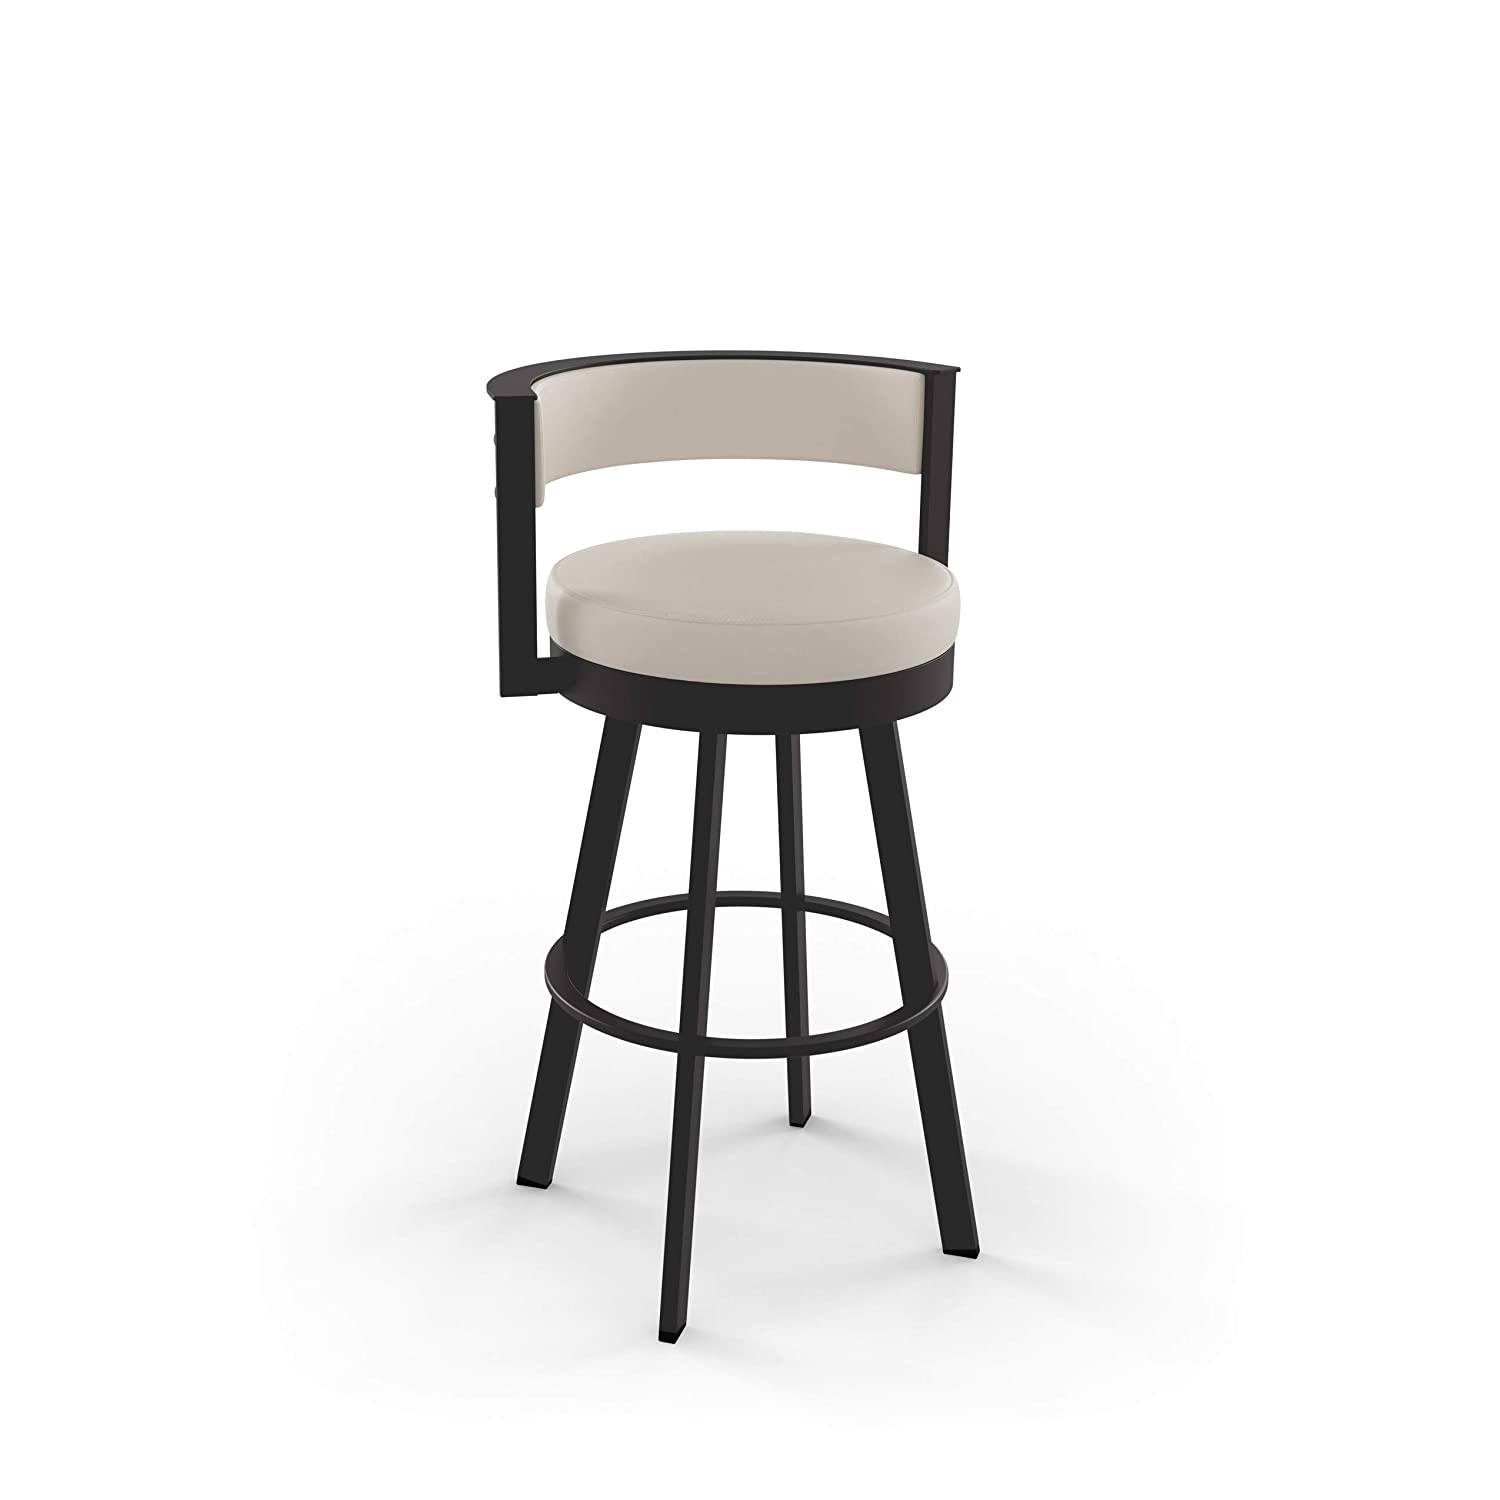 Amisco Browser Swivel Stool Brown Metal and Beige seat, Counter Height